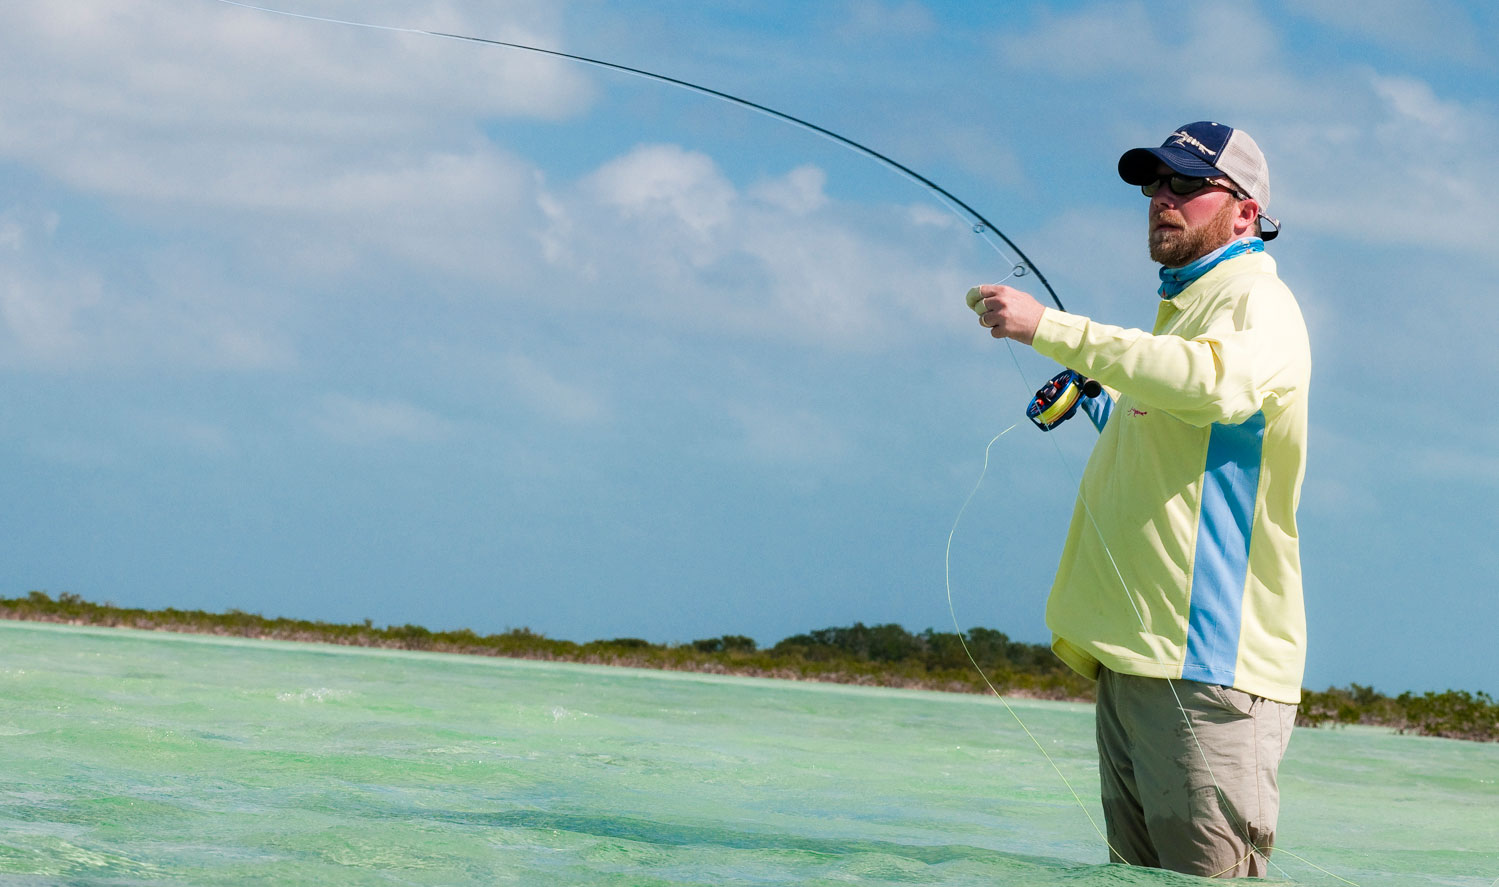 Saltwater fishing pictures the image for Fly fishing photography